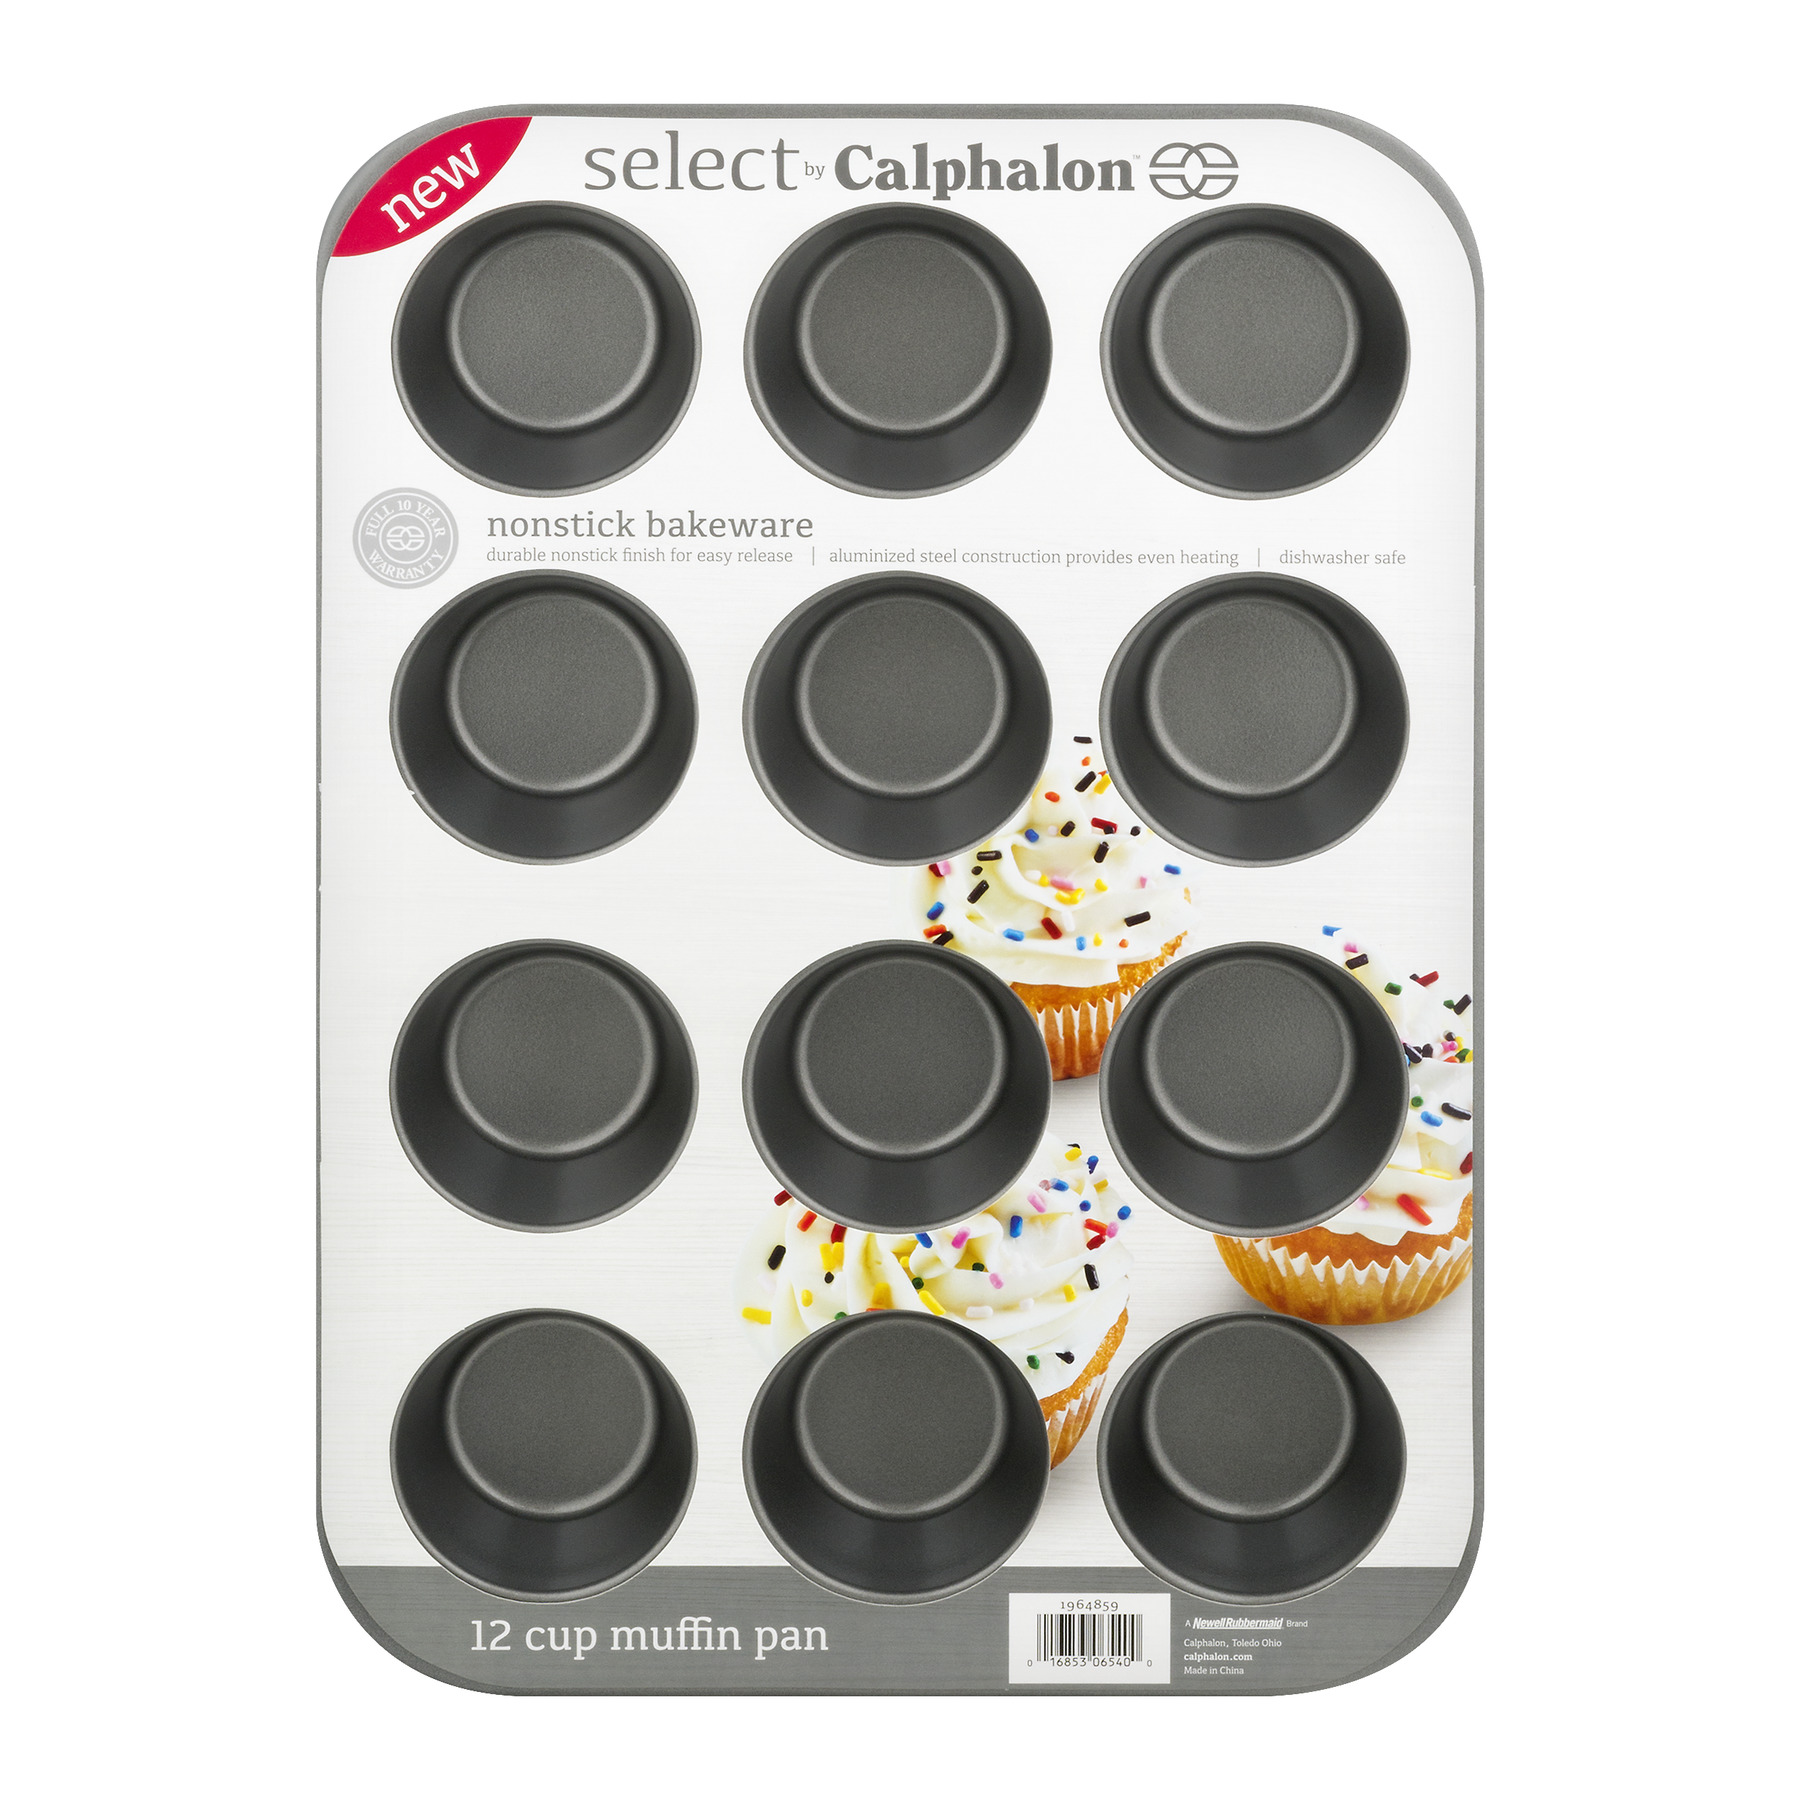 Select by Calphalon Nonstick Bakeware 12 Cup Muffin Pan, 1.0 CT